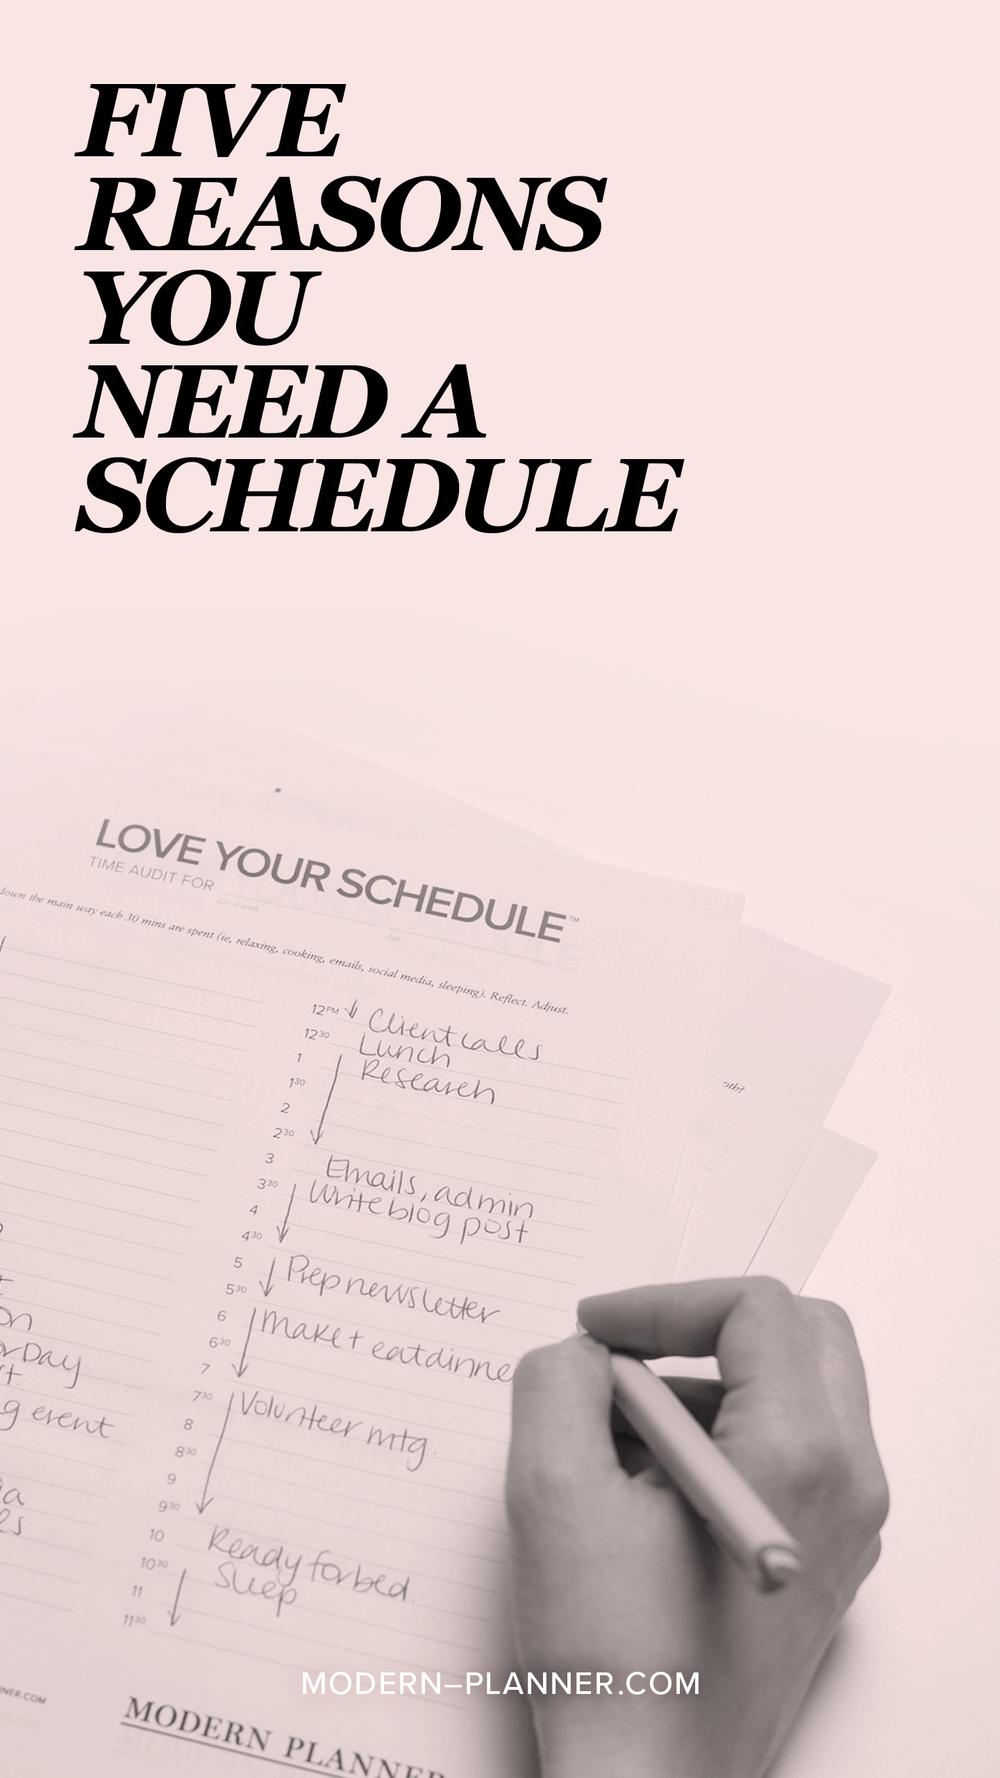 Do you struggle to manage your time? One of the best ways to deal with this is to create a schedule that works for you. Here are five reasons you need a schedule.